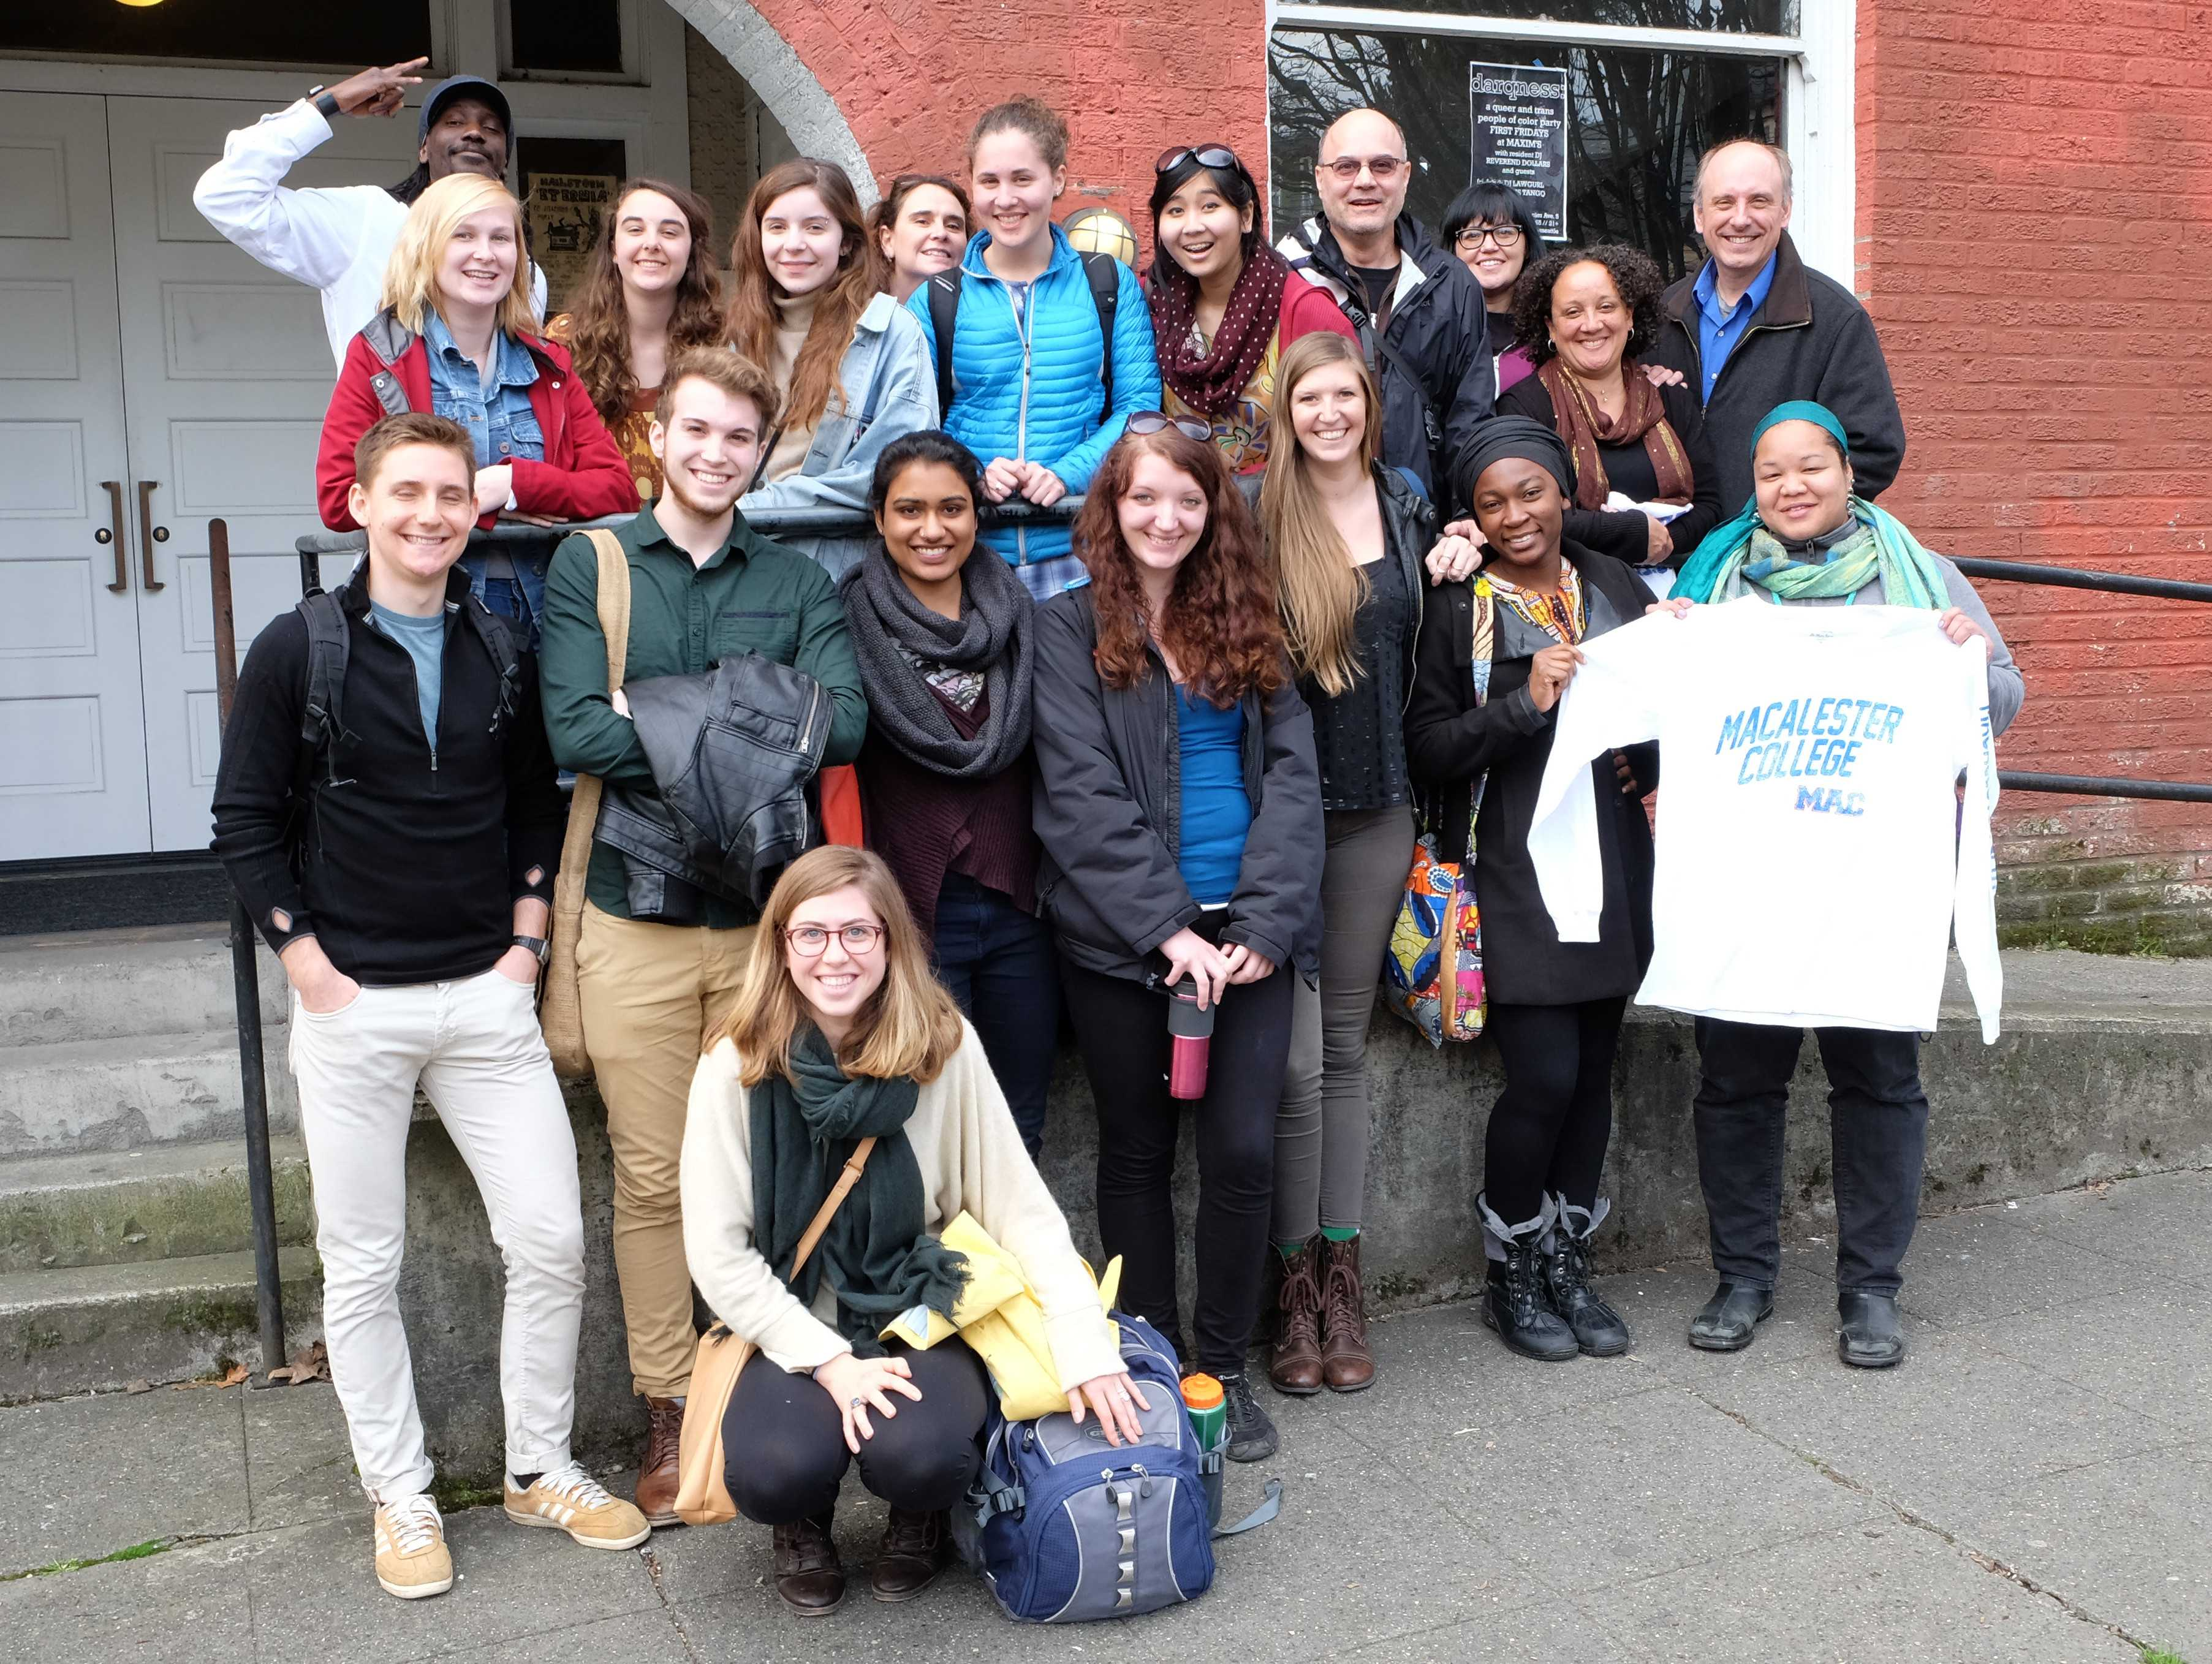 The cohort of Macalester students from the Engaging in the Twin Cities and Seattle course pose together in Seattle during their spring break trip.  The students met alumni in the city and discussed topics pertaining to urban issues. *Photo courtesy of Program Specialist Katie Pratt from the Institute for Global Citizenship.*